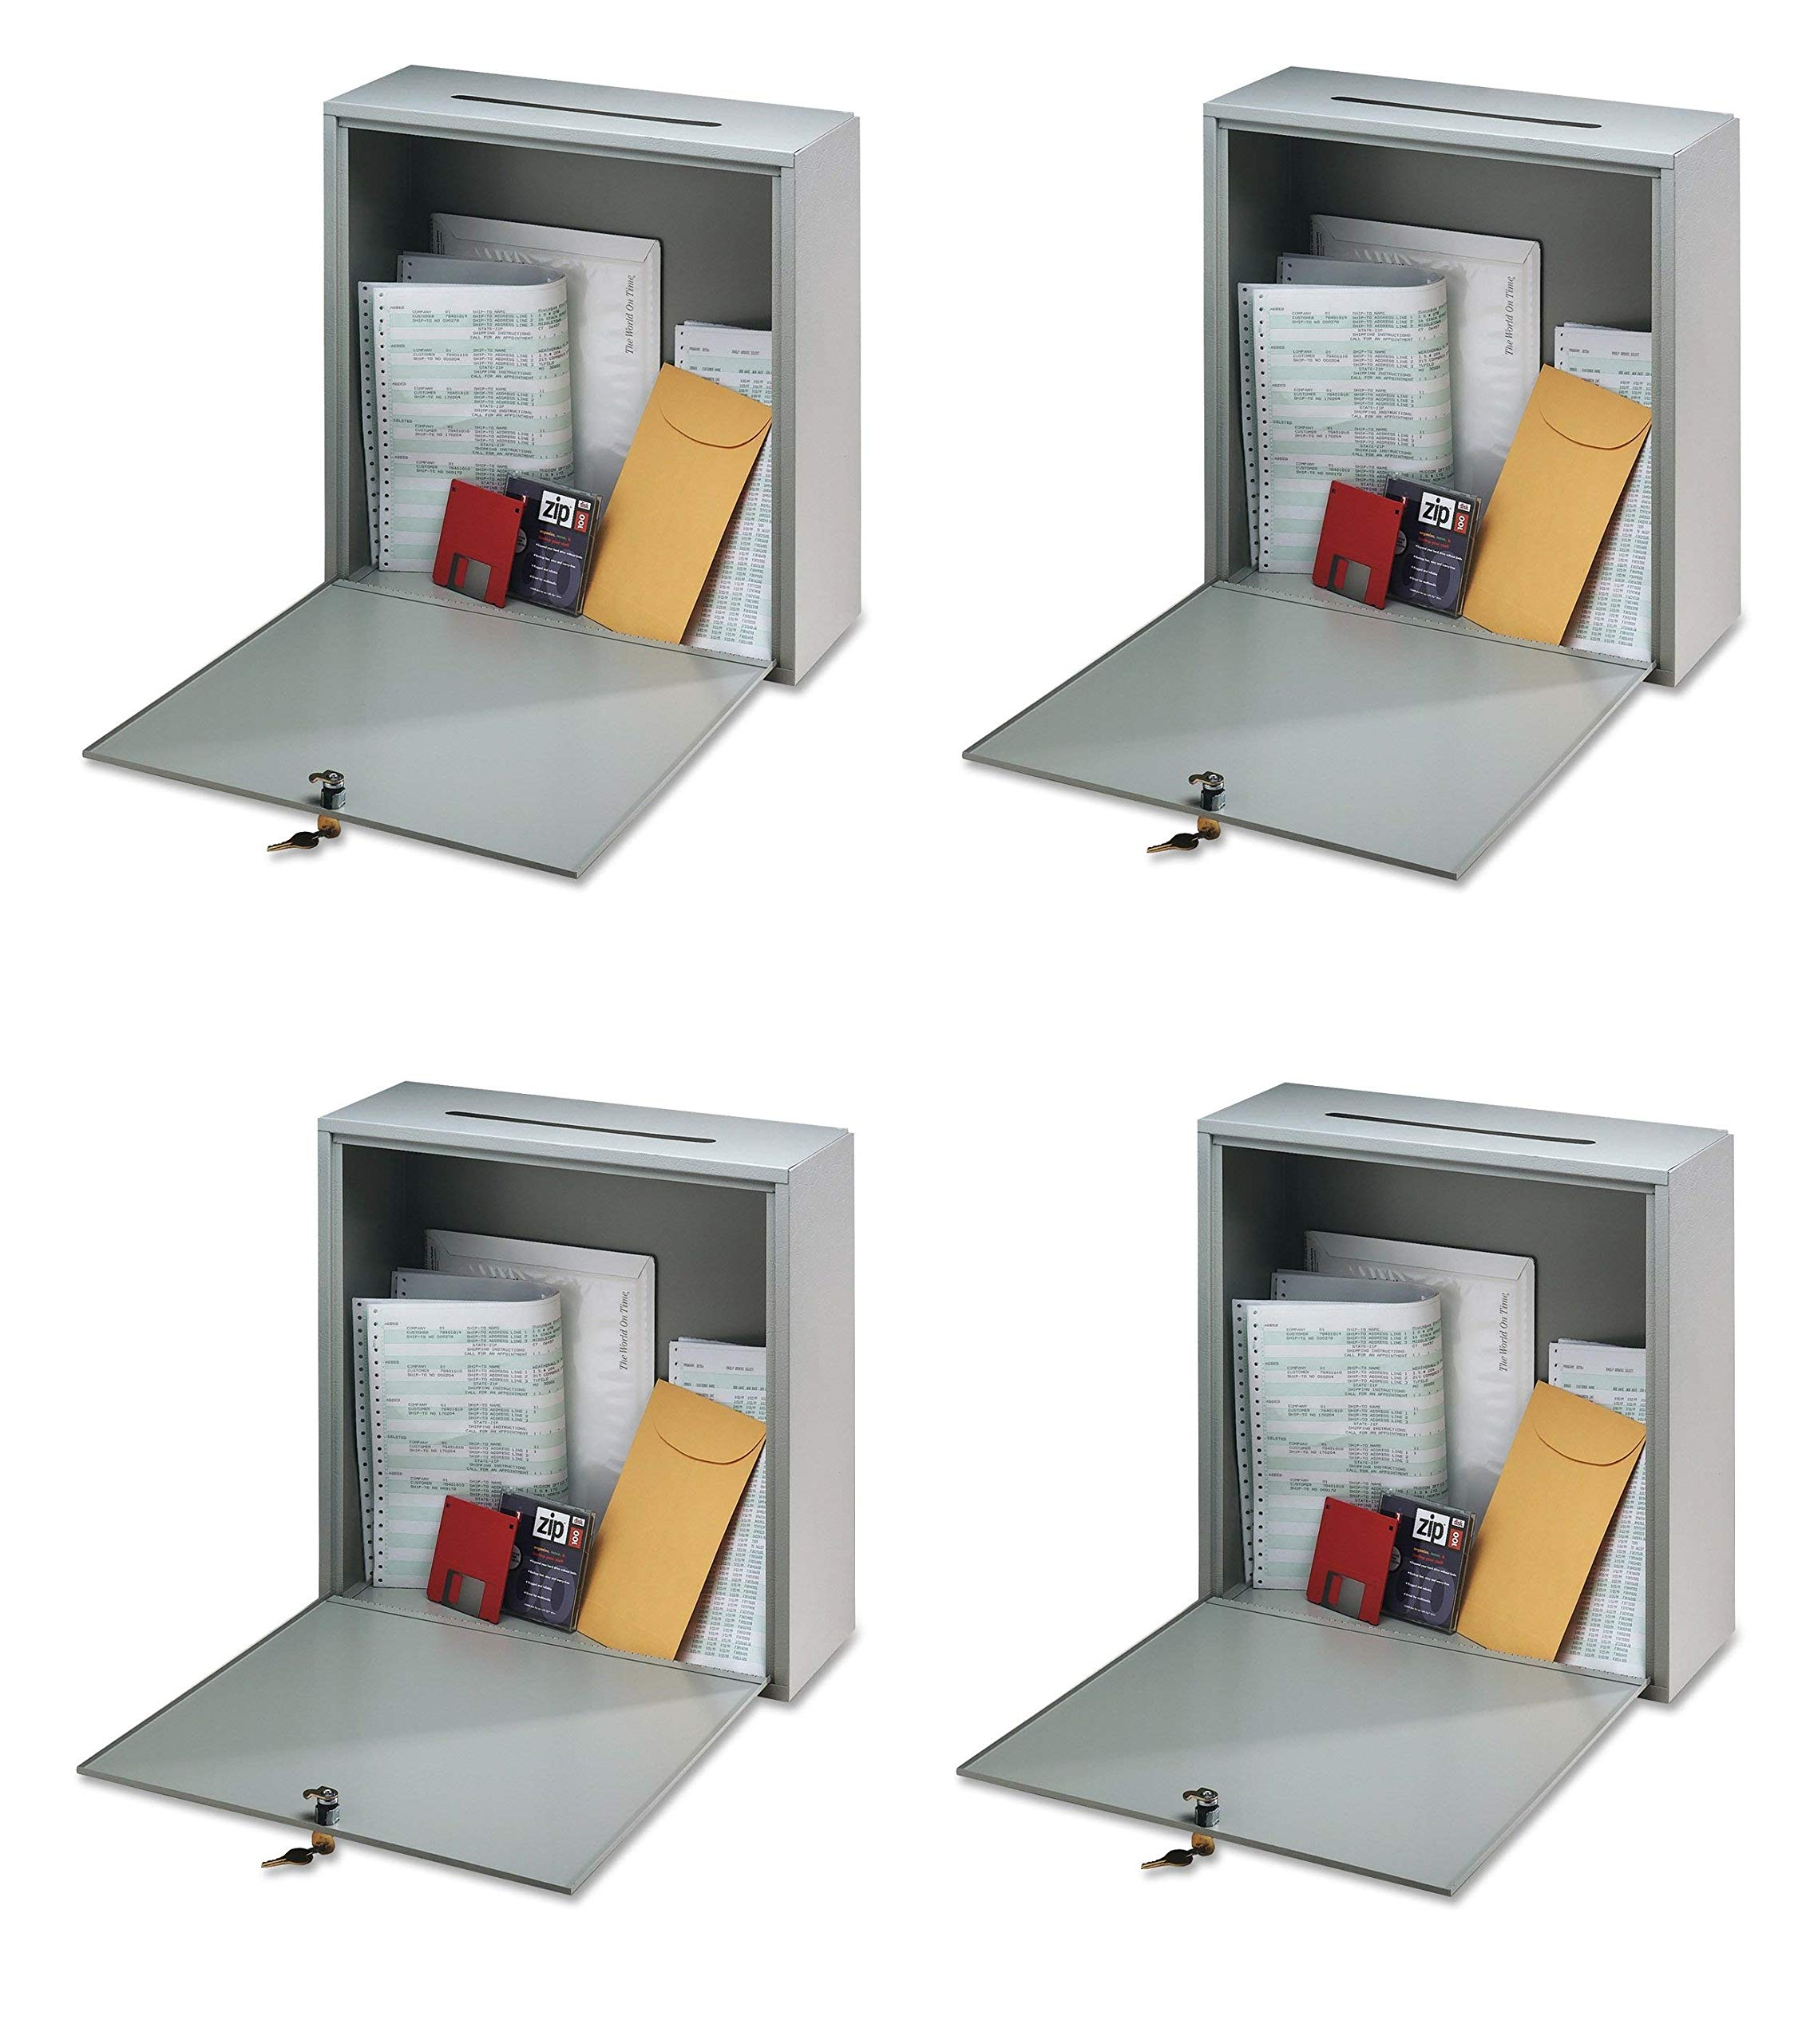 Buddy Products Inter-Office Mailbox, Steel, Small, 3 x 10 x 12 Inches, Platinum (5625-32) (Pack of 4) by Buddy Products (Image #1)